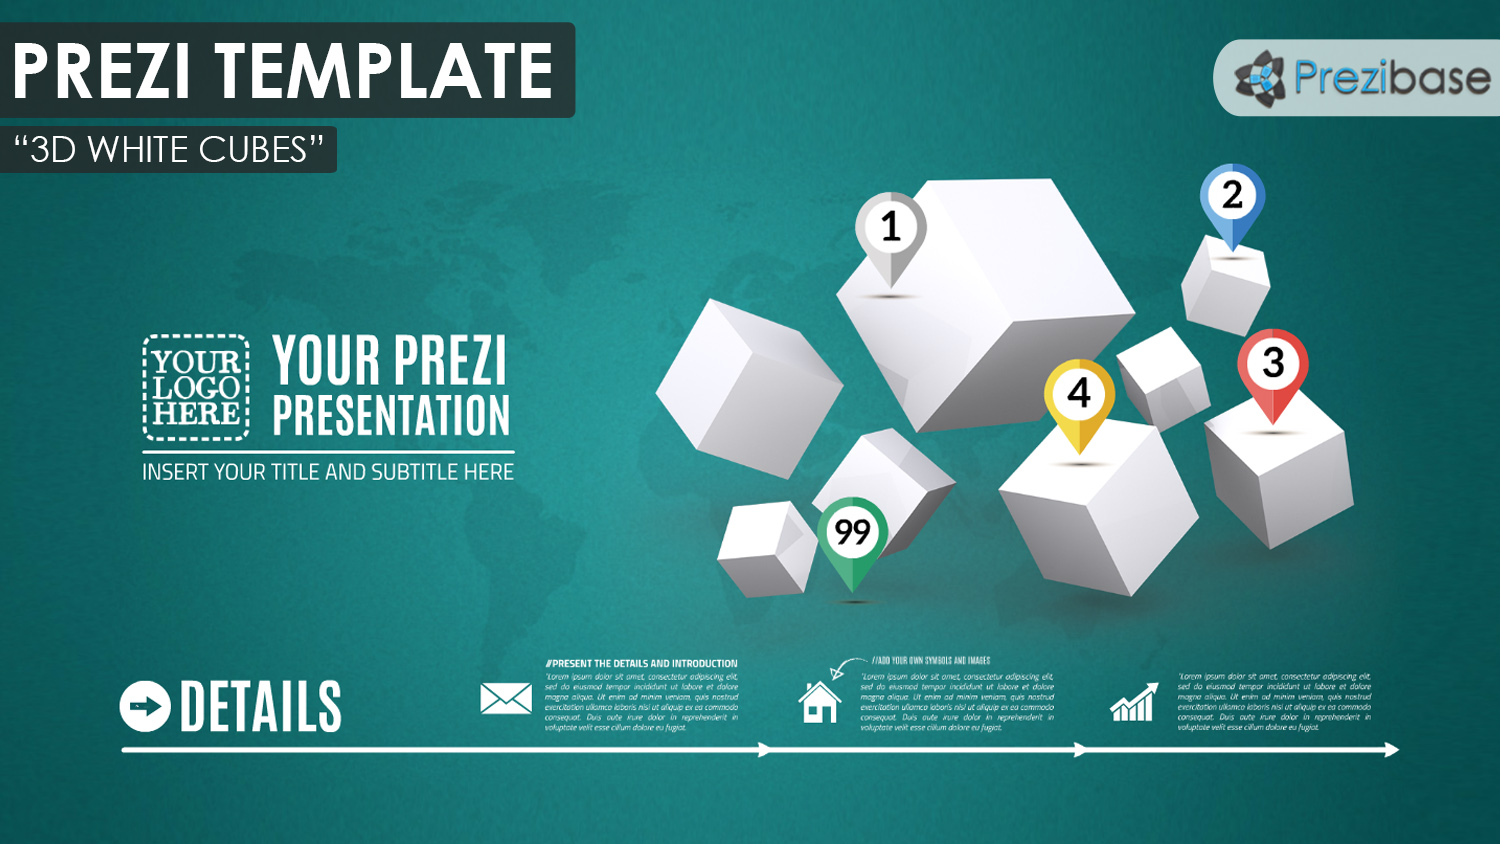 Business prezi templates prezibase 3d white cubes squares infographic business prezi template cheaphphosting Images